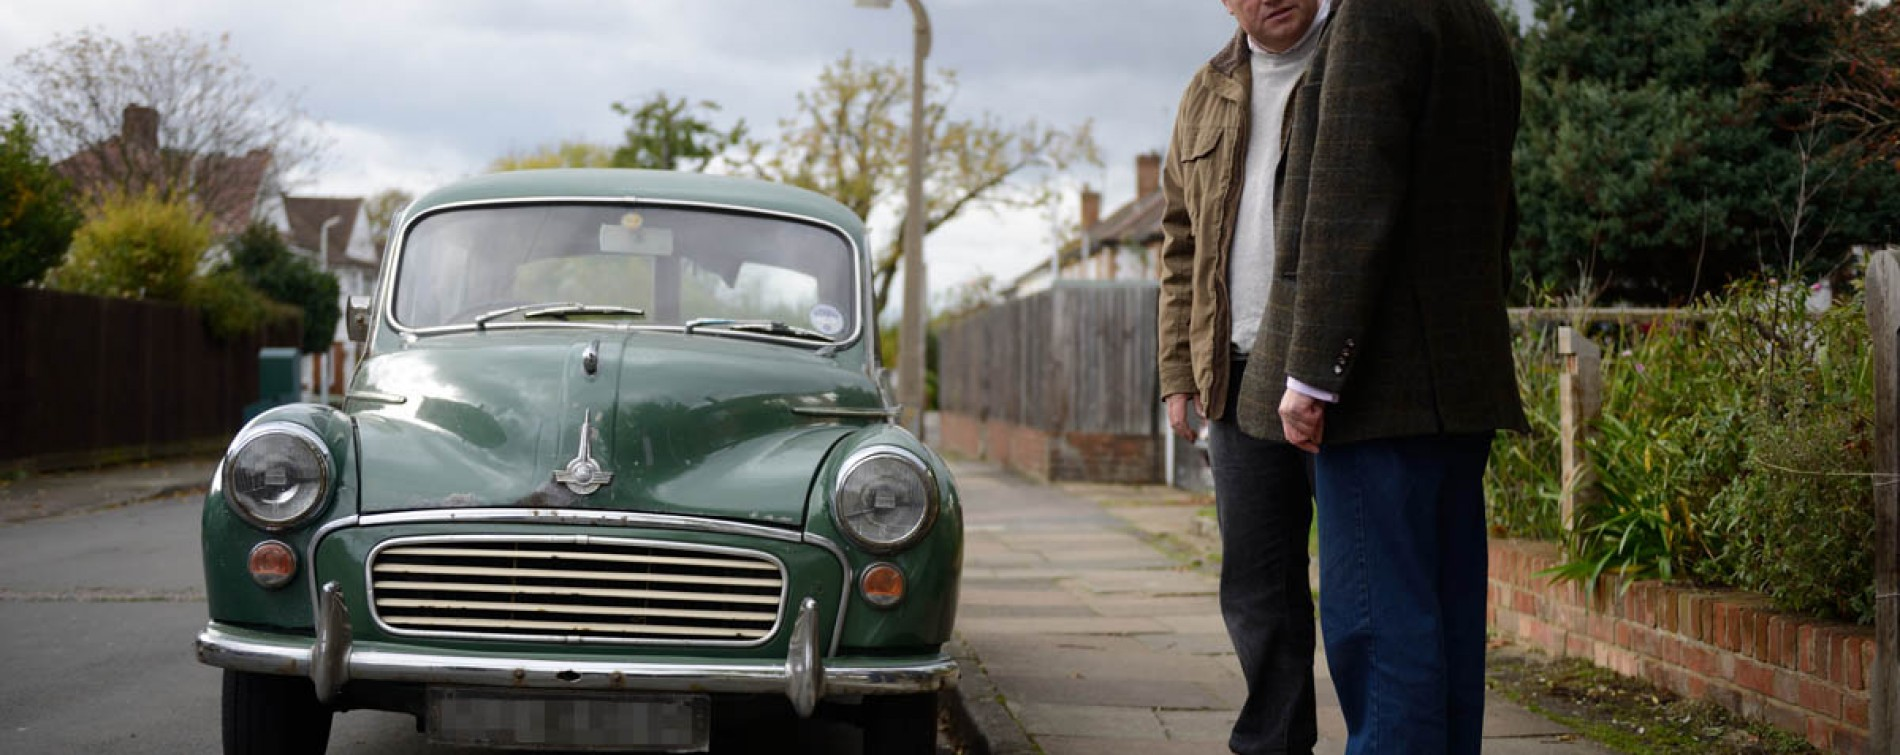 Morris minor traveller for sale - Morris Minor Mike Wants To Get His Hands On A Morris Minor Traveller But Has Problems Getting One Within Budget